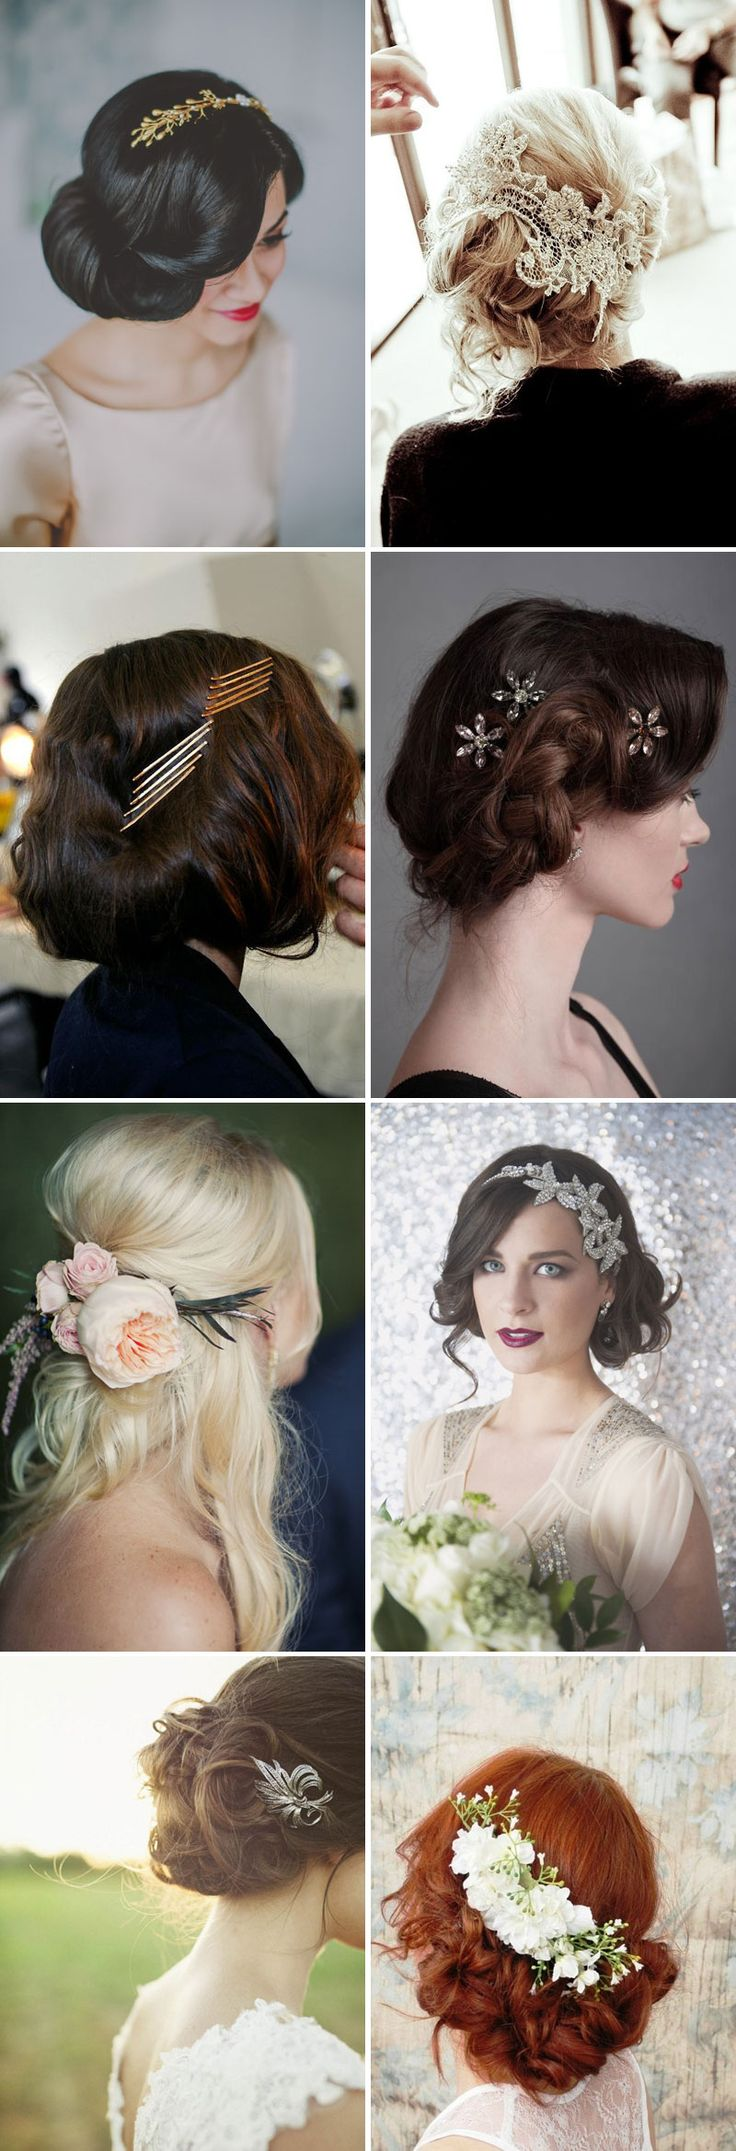 Embellished Updo trends 2015-2016